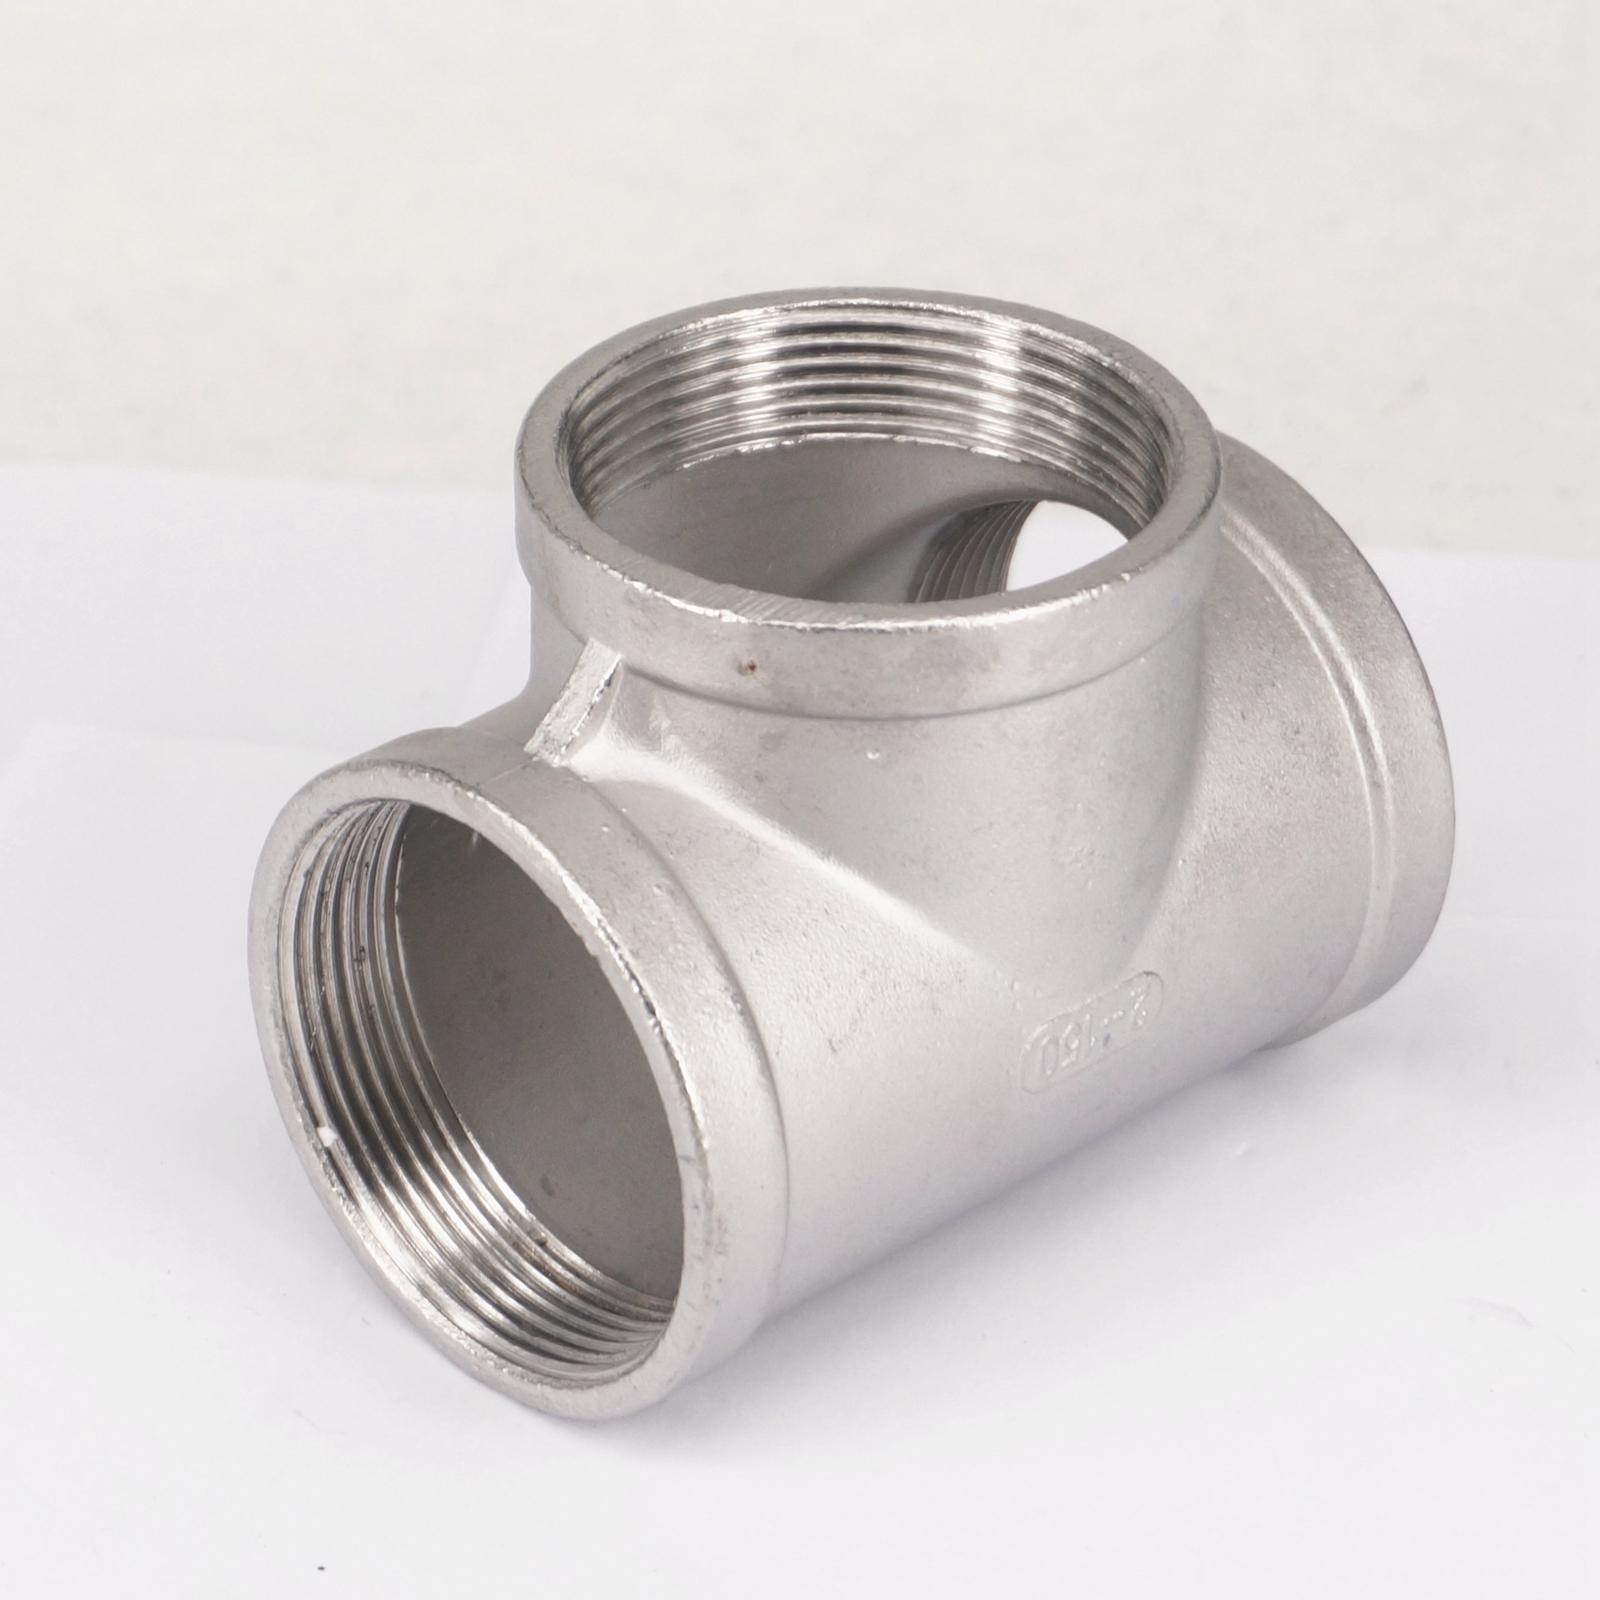 2 BSP Euqal Female Tee Thread 3 Way 304 Stainless Steel Pipe Fitting Connector Coupling for water air gas 2 1 2 male x 1 1 2 female thread reducer bushing m f pipe fitting ss 304 bsp